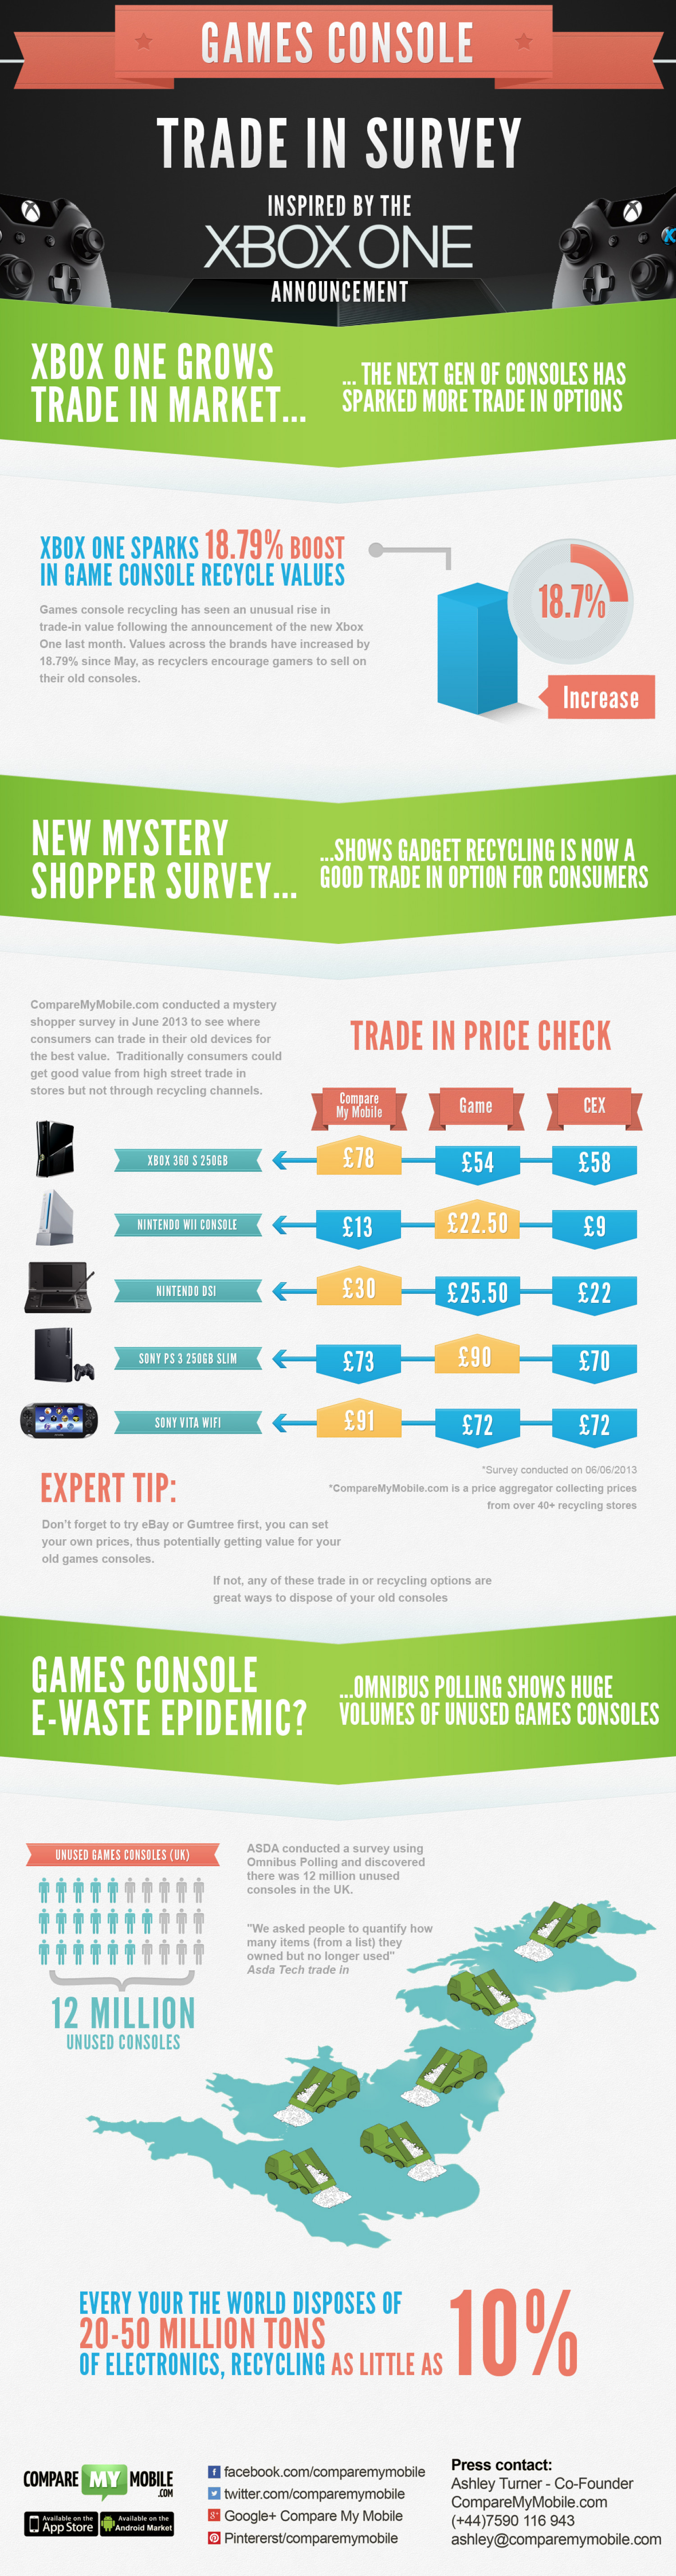 Gadget recycling: The Xbox Trade-in Survey Infographic